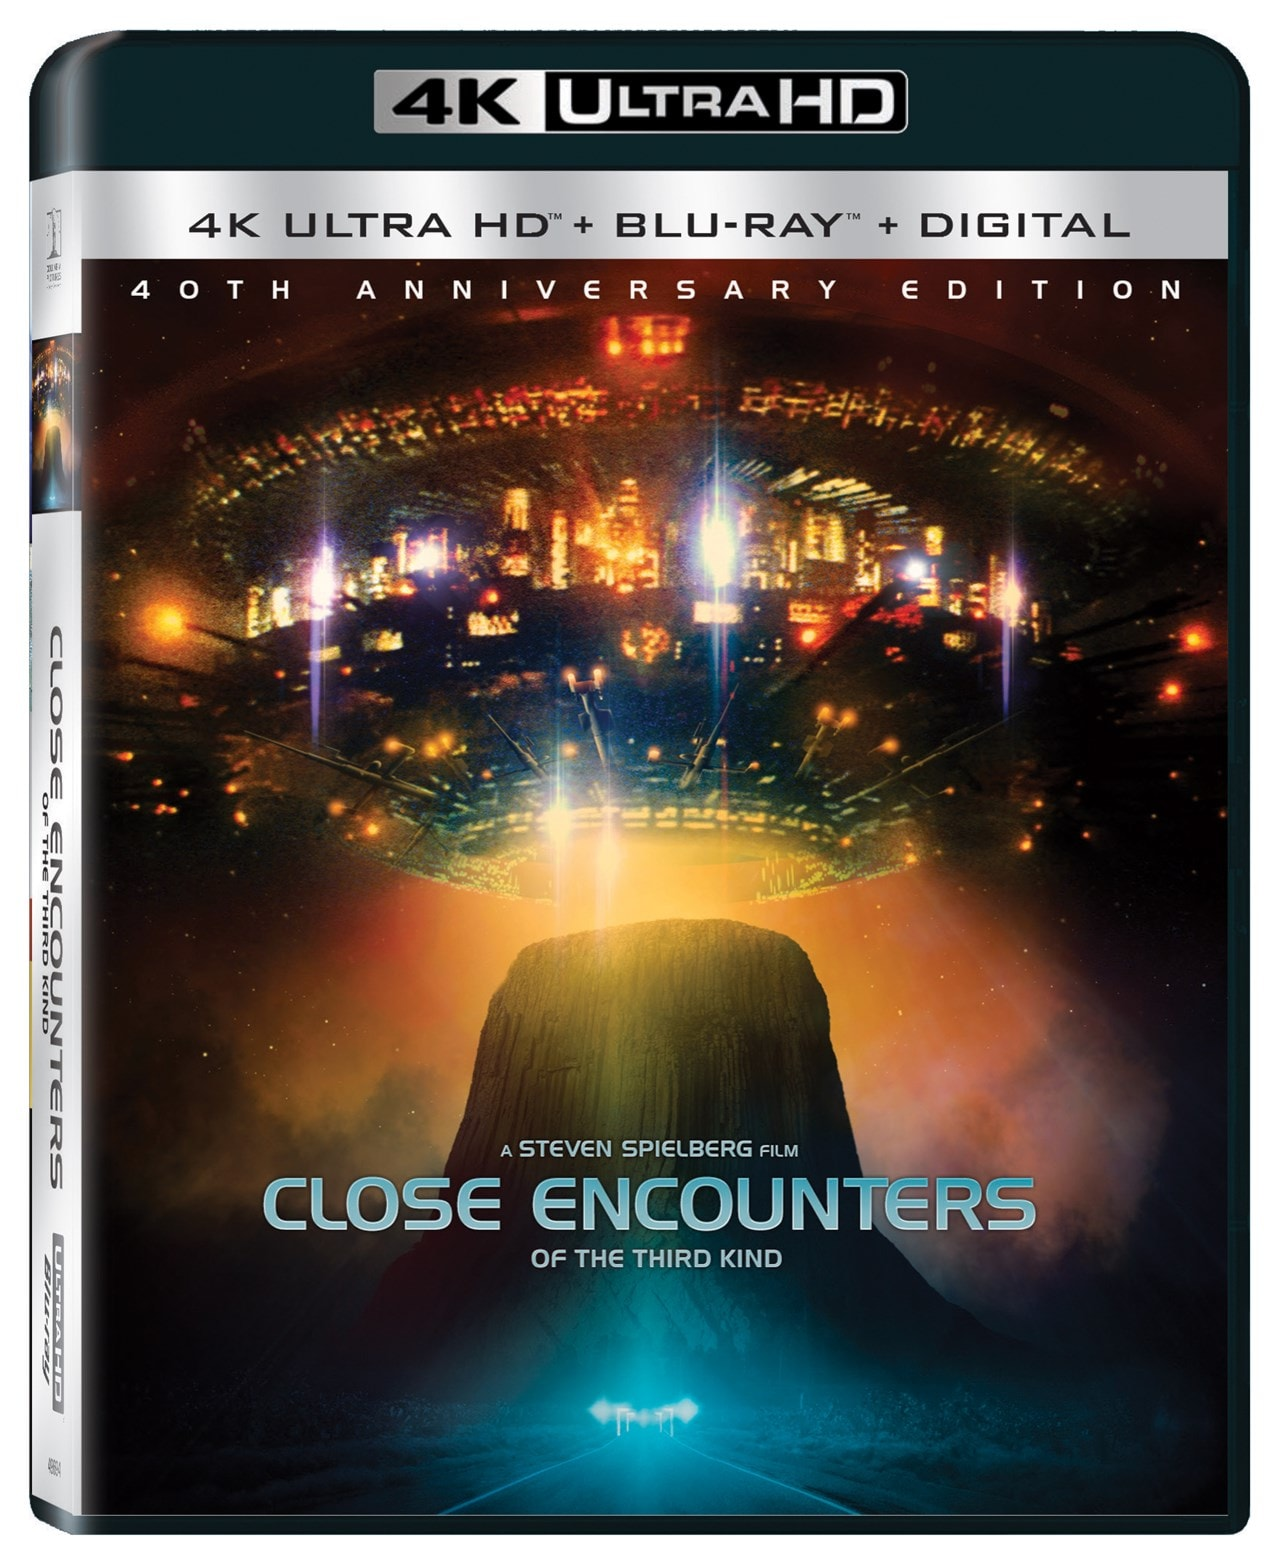 Close Encounters of the Third Kind - 4